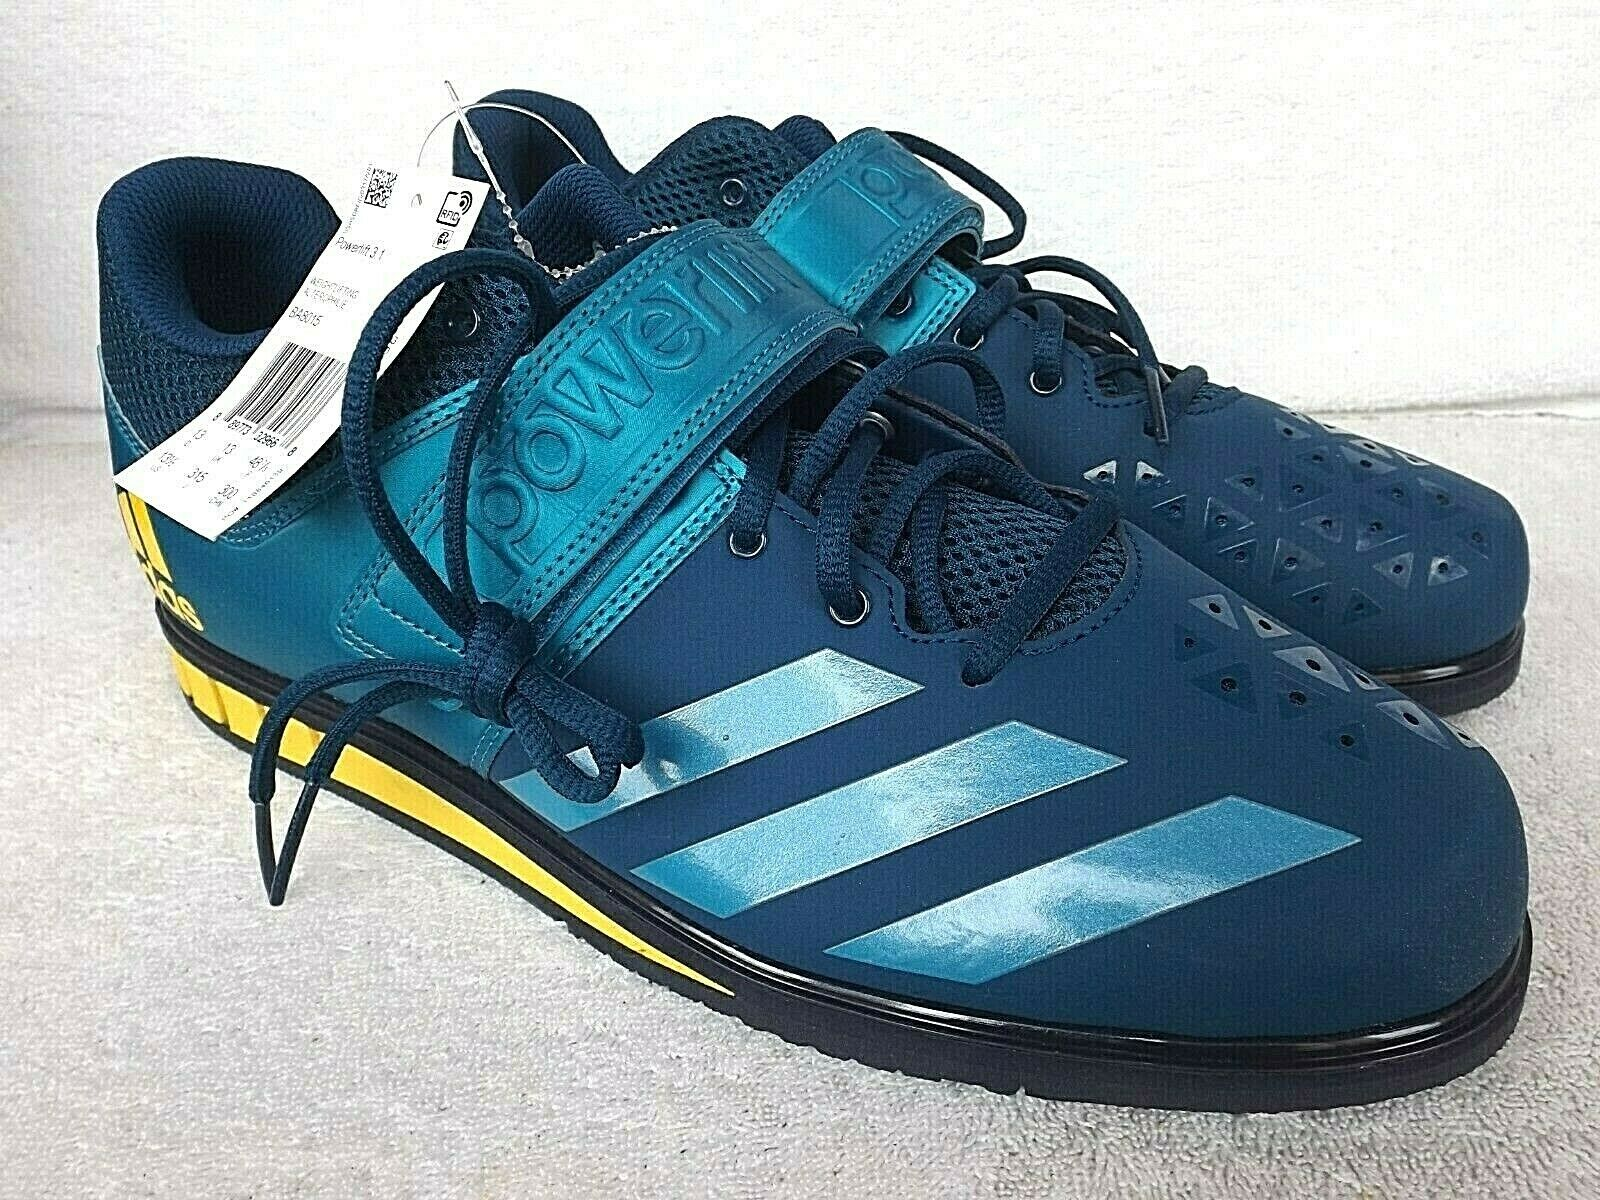 New Adidas Powerlift 3.1 Weightlifting shoes Men's Sz 13.5 Teal w  Yellow BA8015